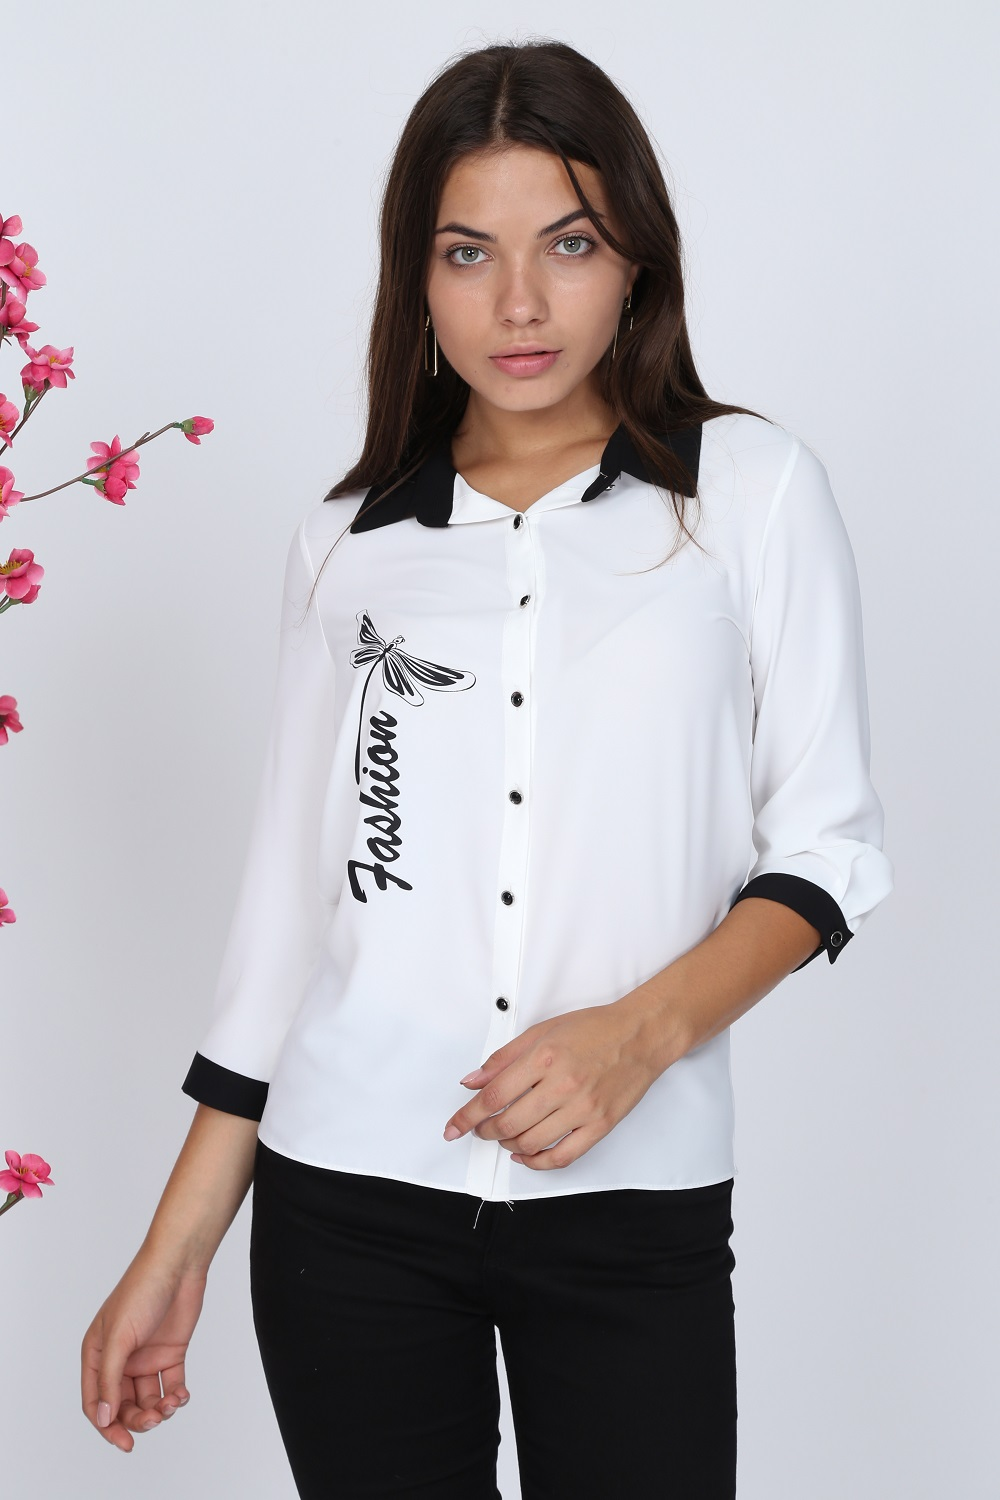 Butterfly Patterned White Blouse